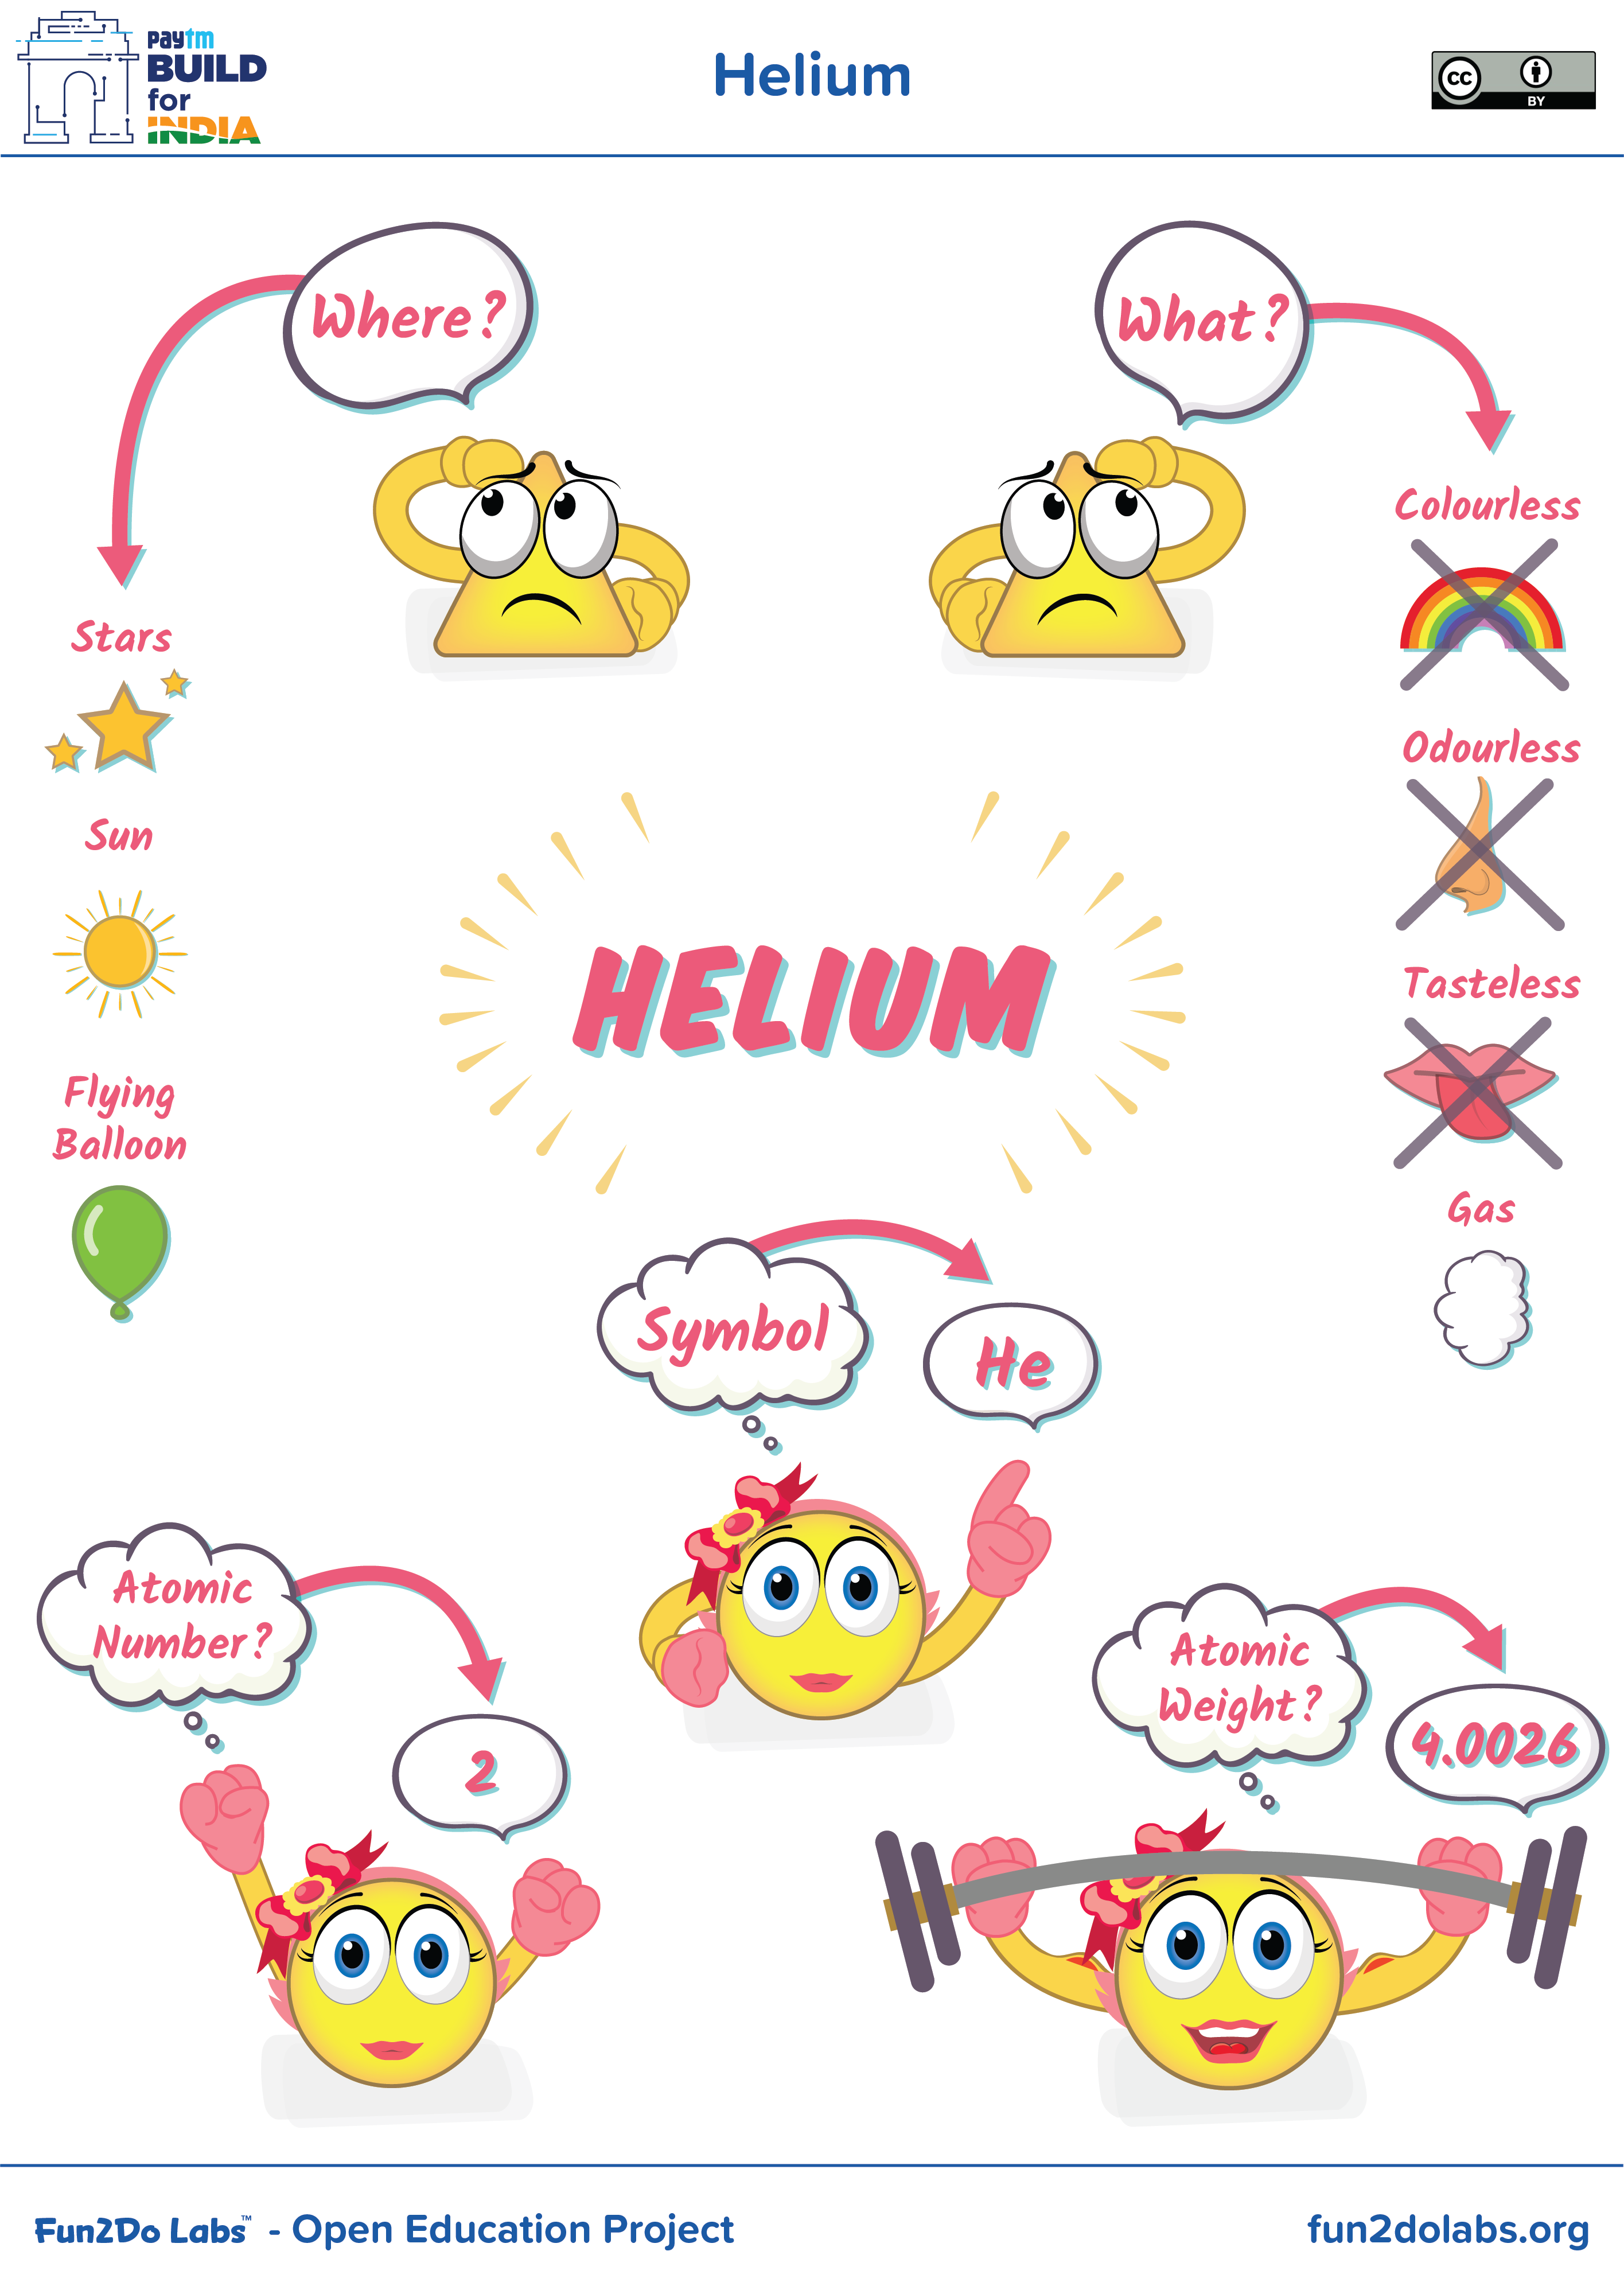 small resolution of you can use this image for introducing helium to kids where is helium found what is helium atomic symbol of helium atomic number of helium